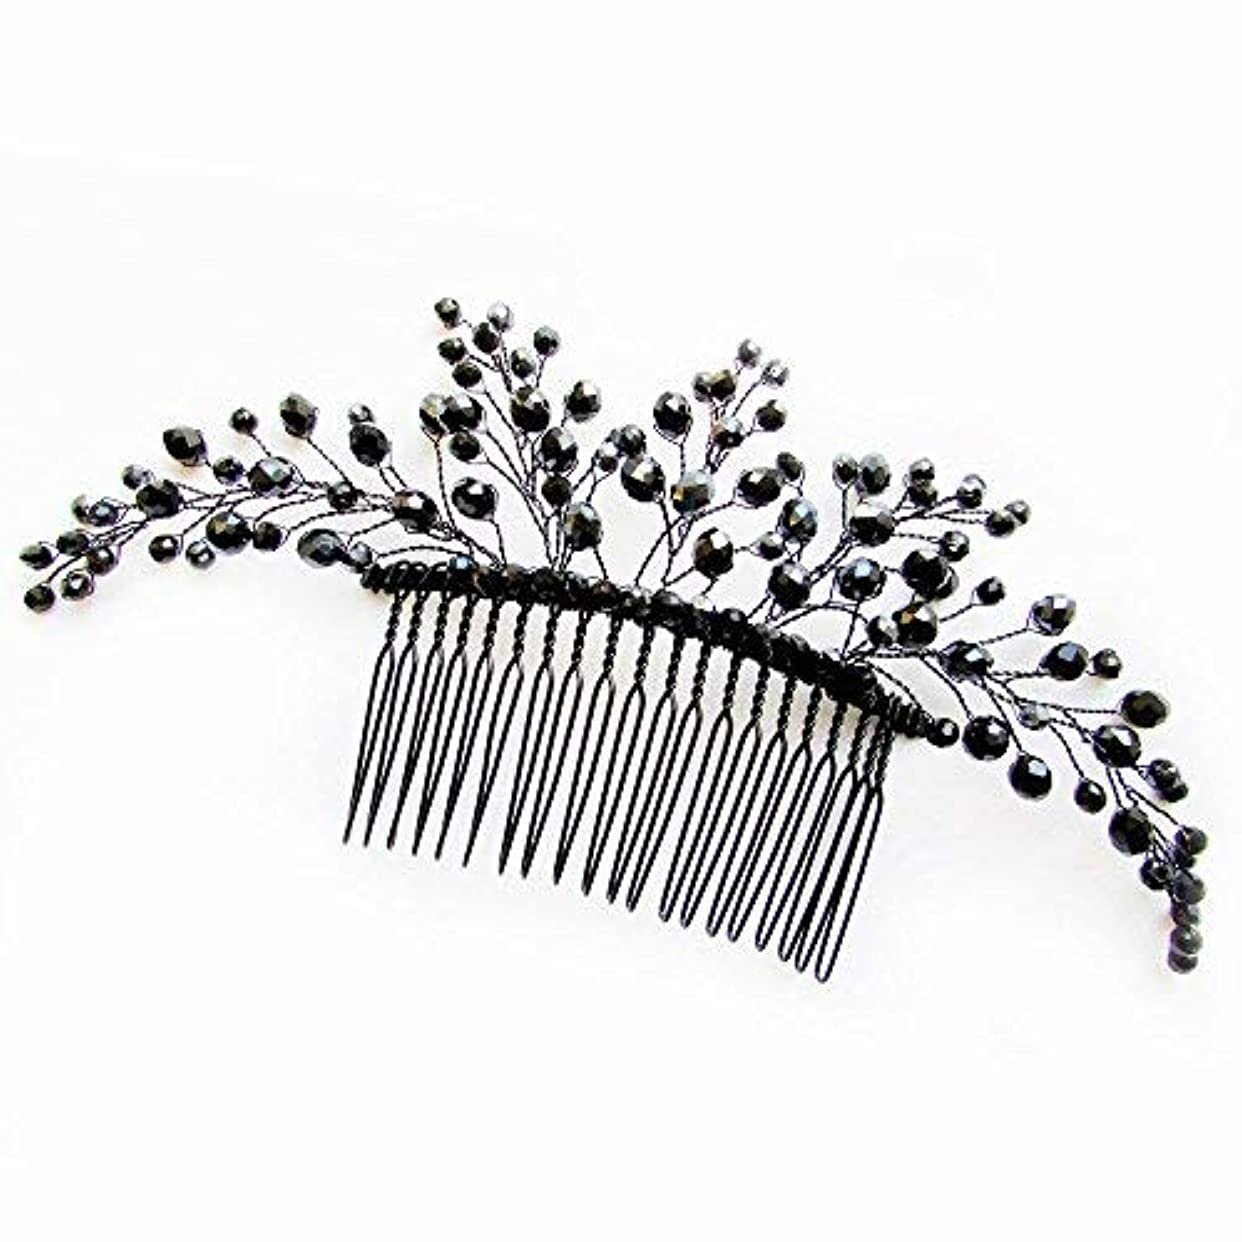 棚エレベーター休日Missgrace Black Hair Comb Halloween Special Occasion Headpiece Black Hair Accessories [並行輸入品]